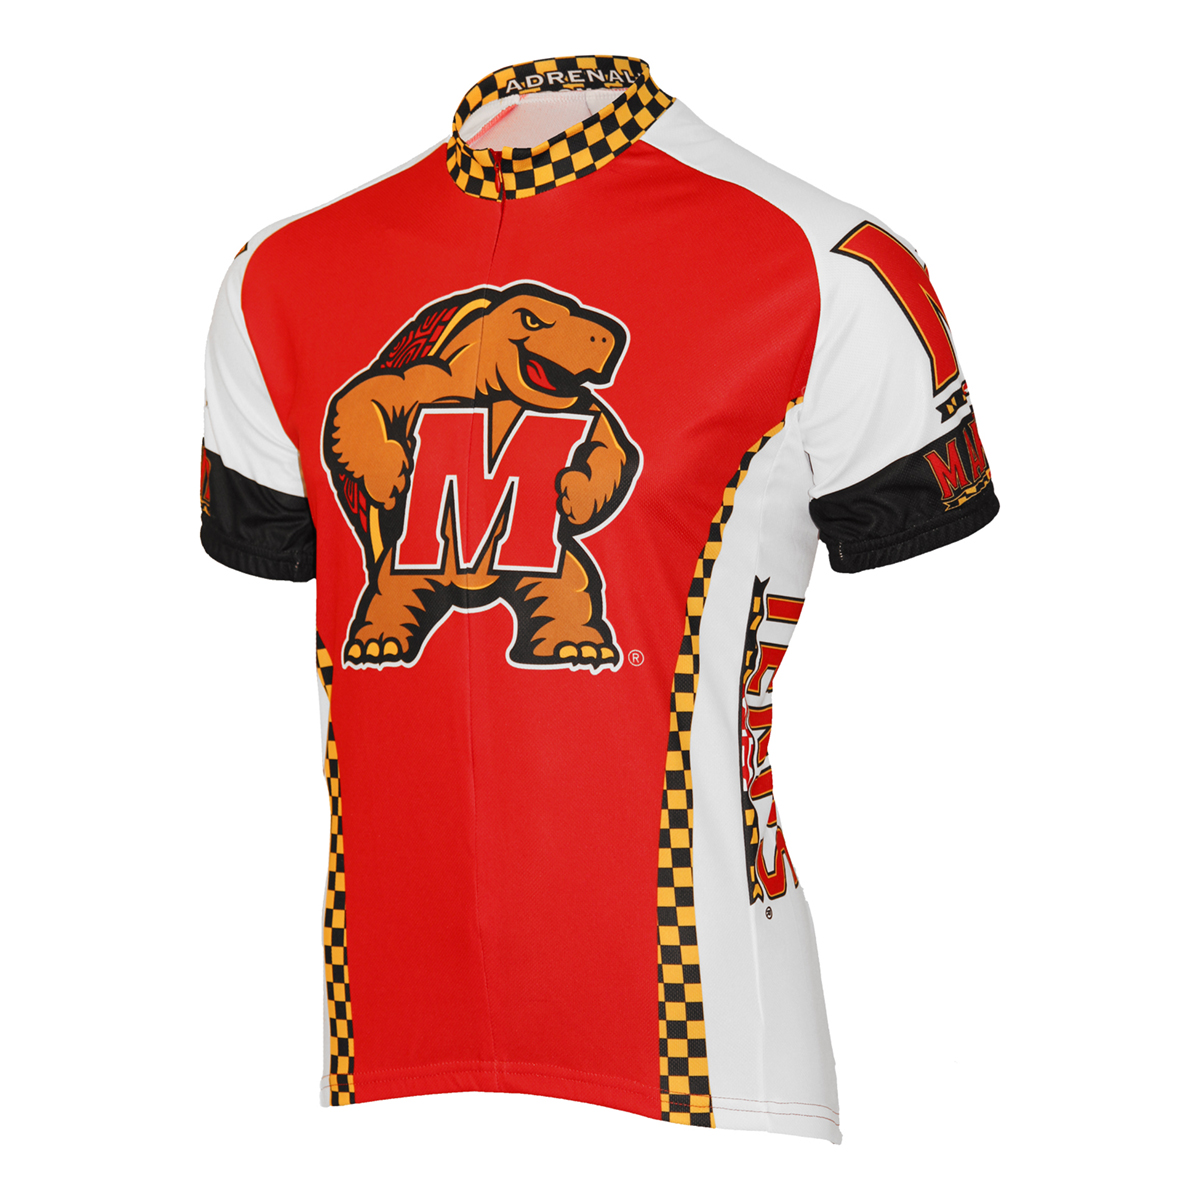 Adrenaline Promotions University of Maryland Terrapin Cycling Jersey